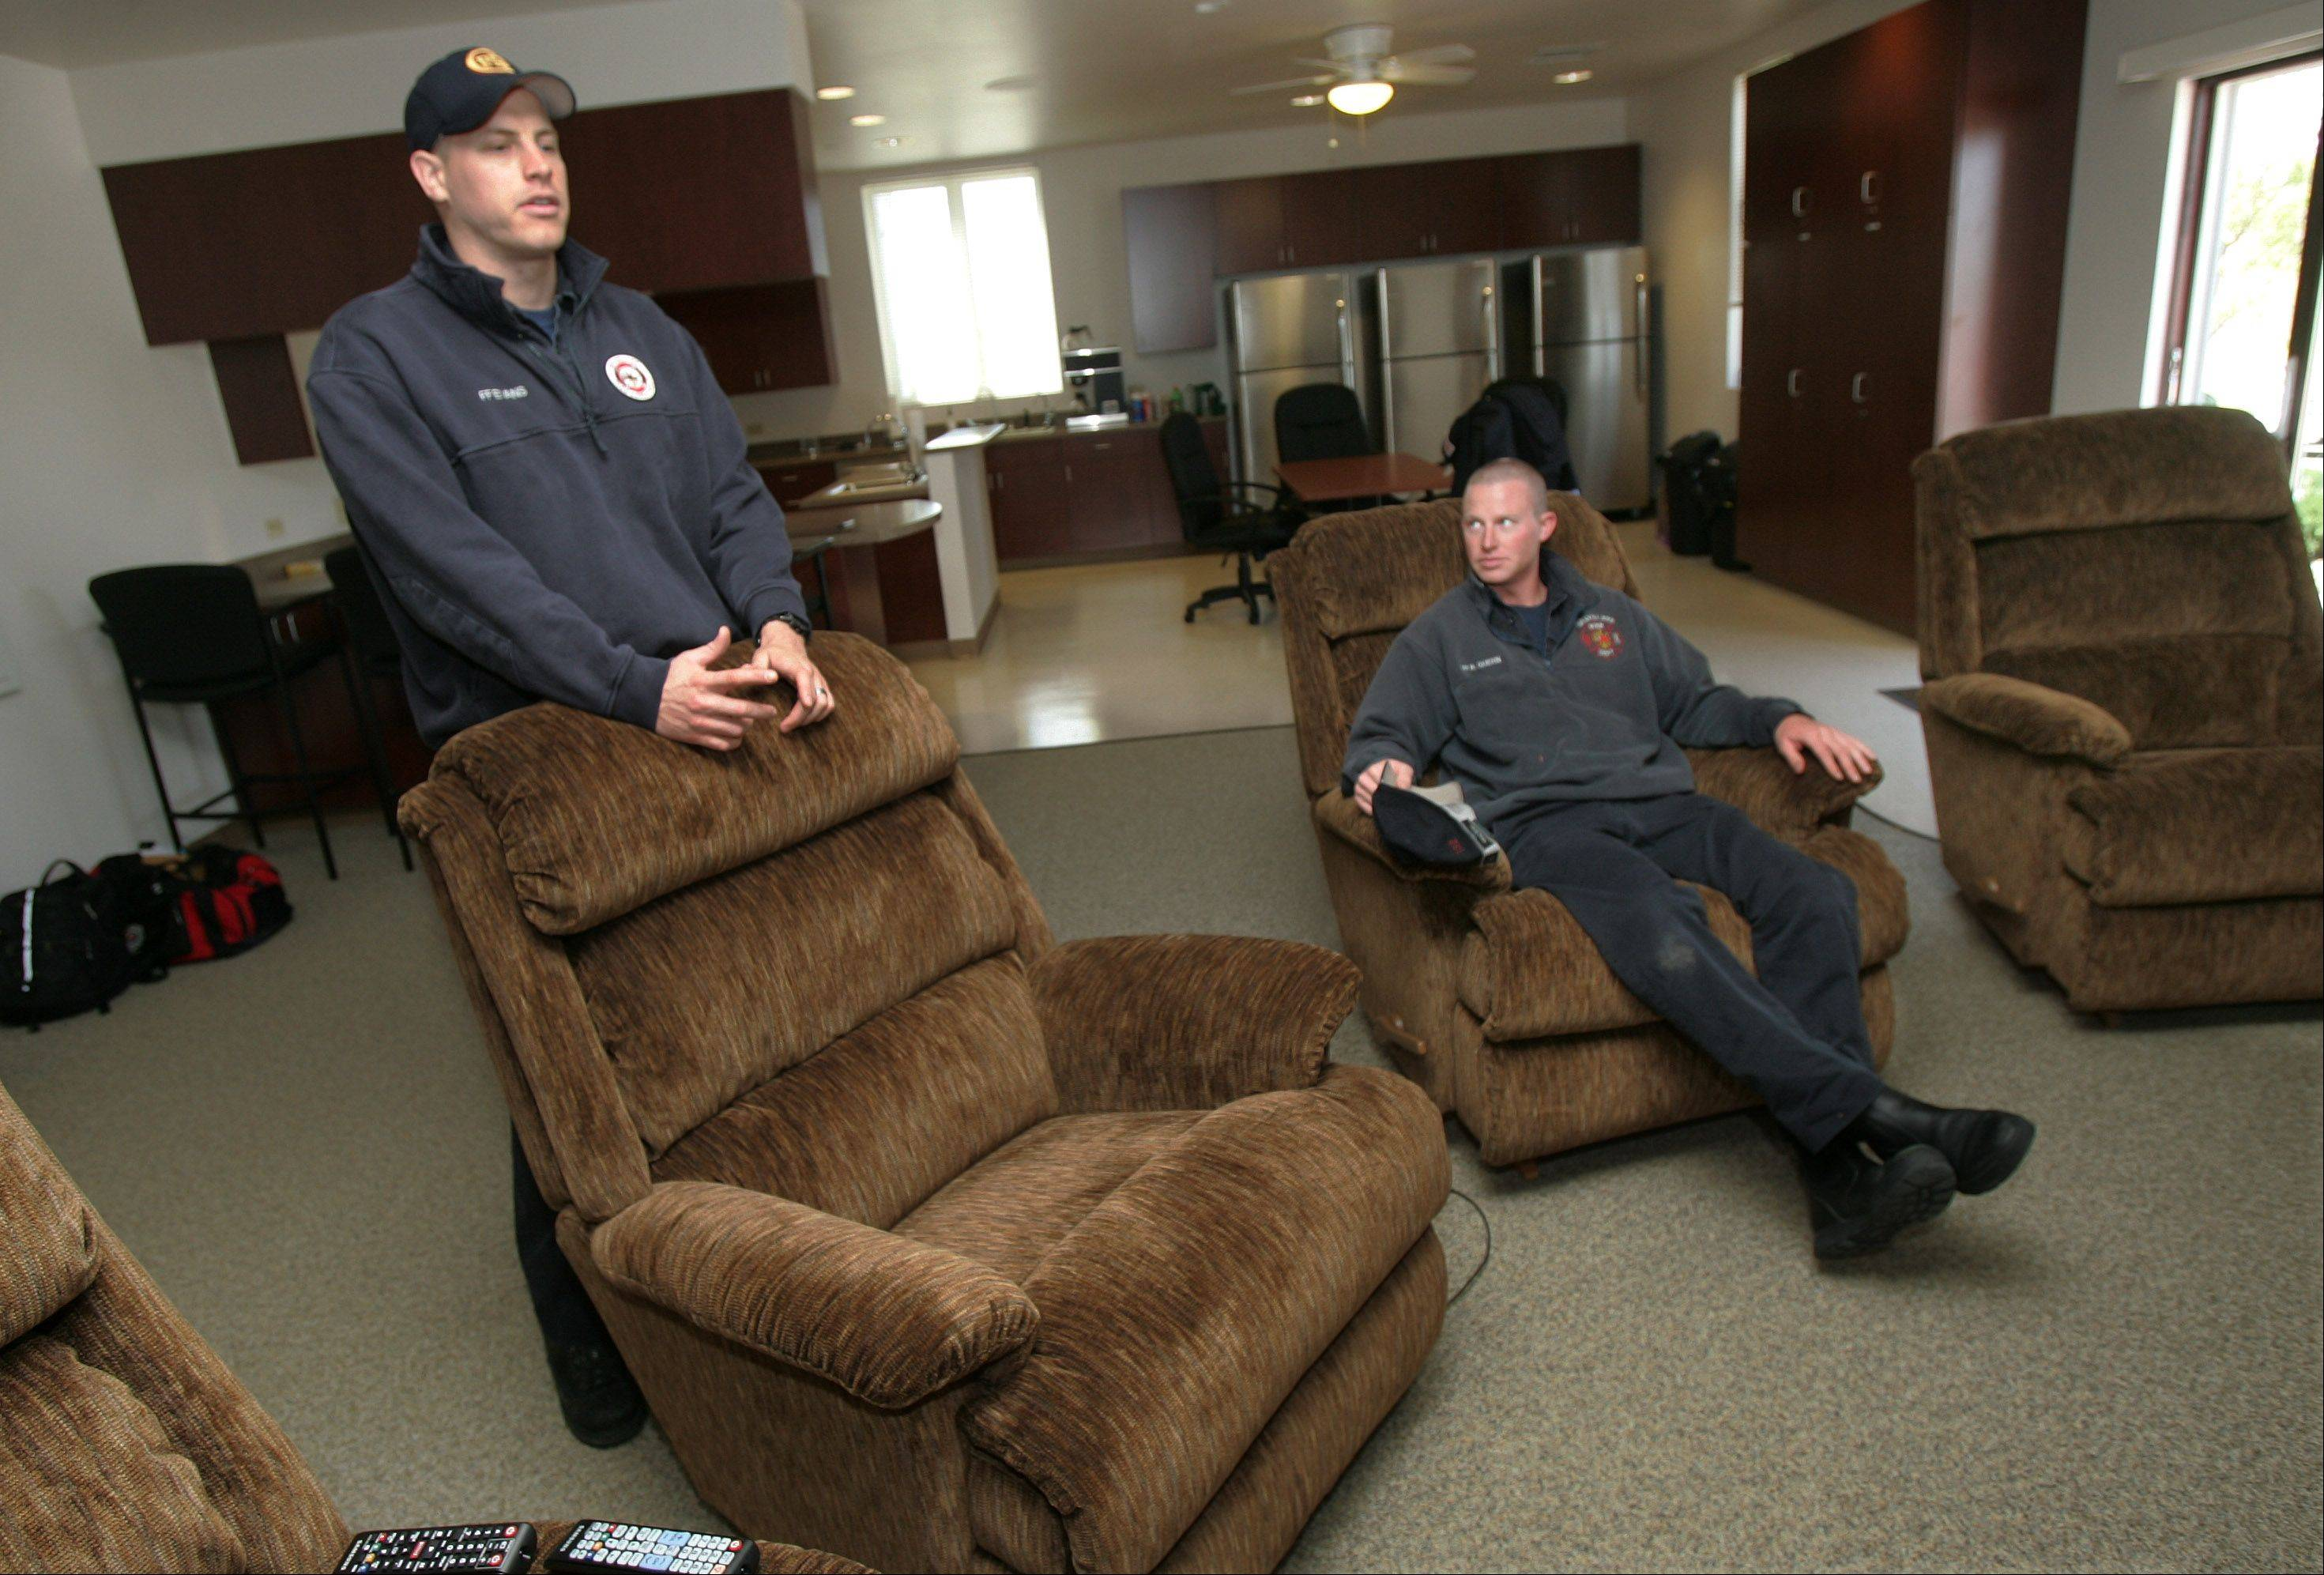 Firefighters Isaac Evans, left, and Ross Guerin recently talked about their first day at Grayslake Fire Protection District's new third station near Route 60 and Peterson Road.